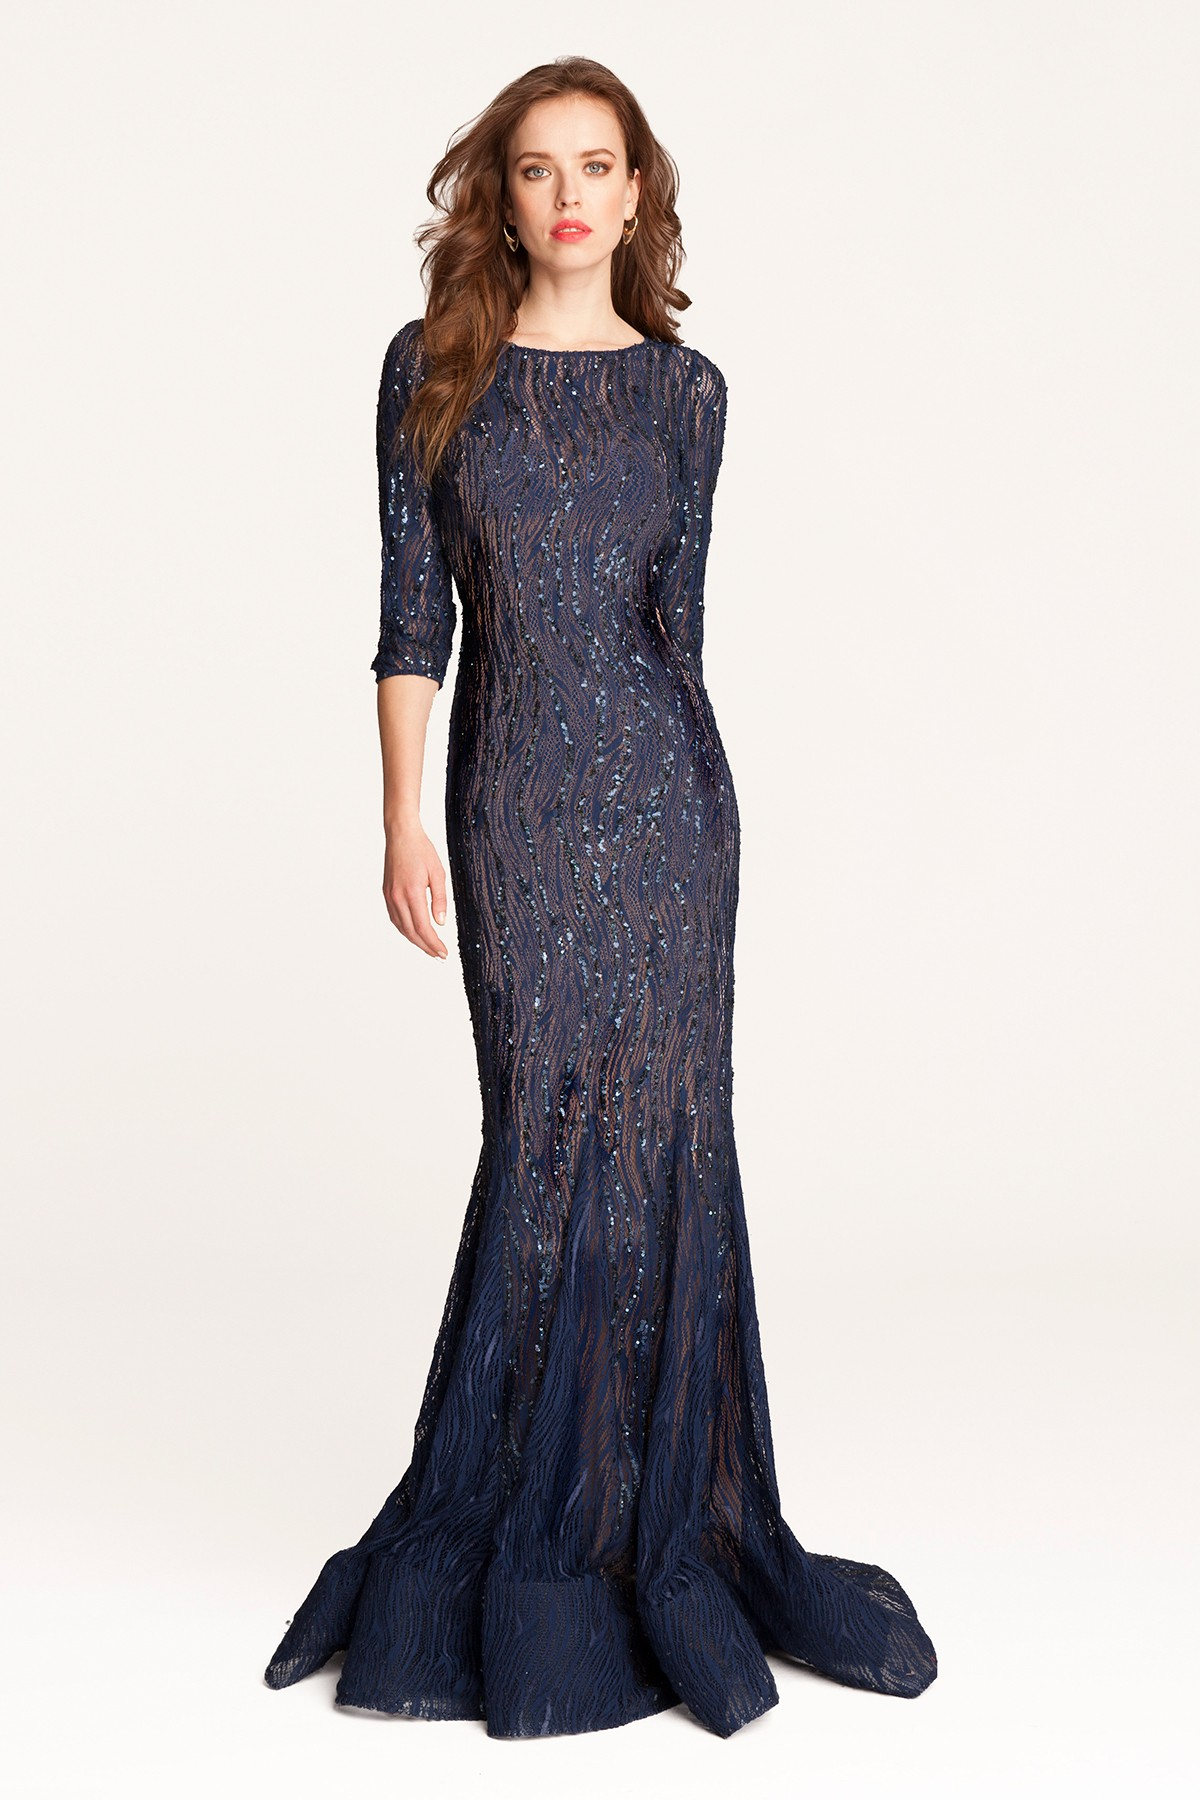 navy blue lace dress lord and taylor dress blog edin